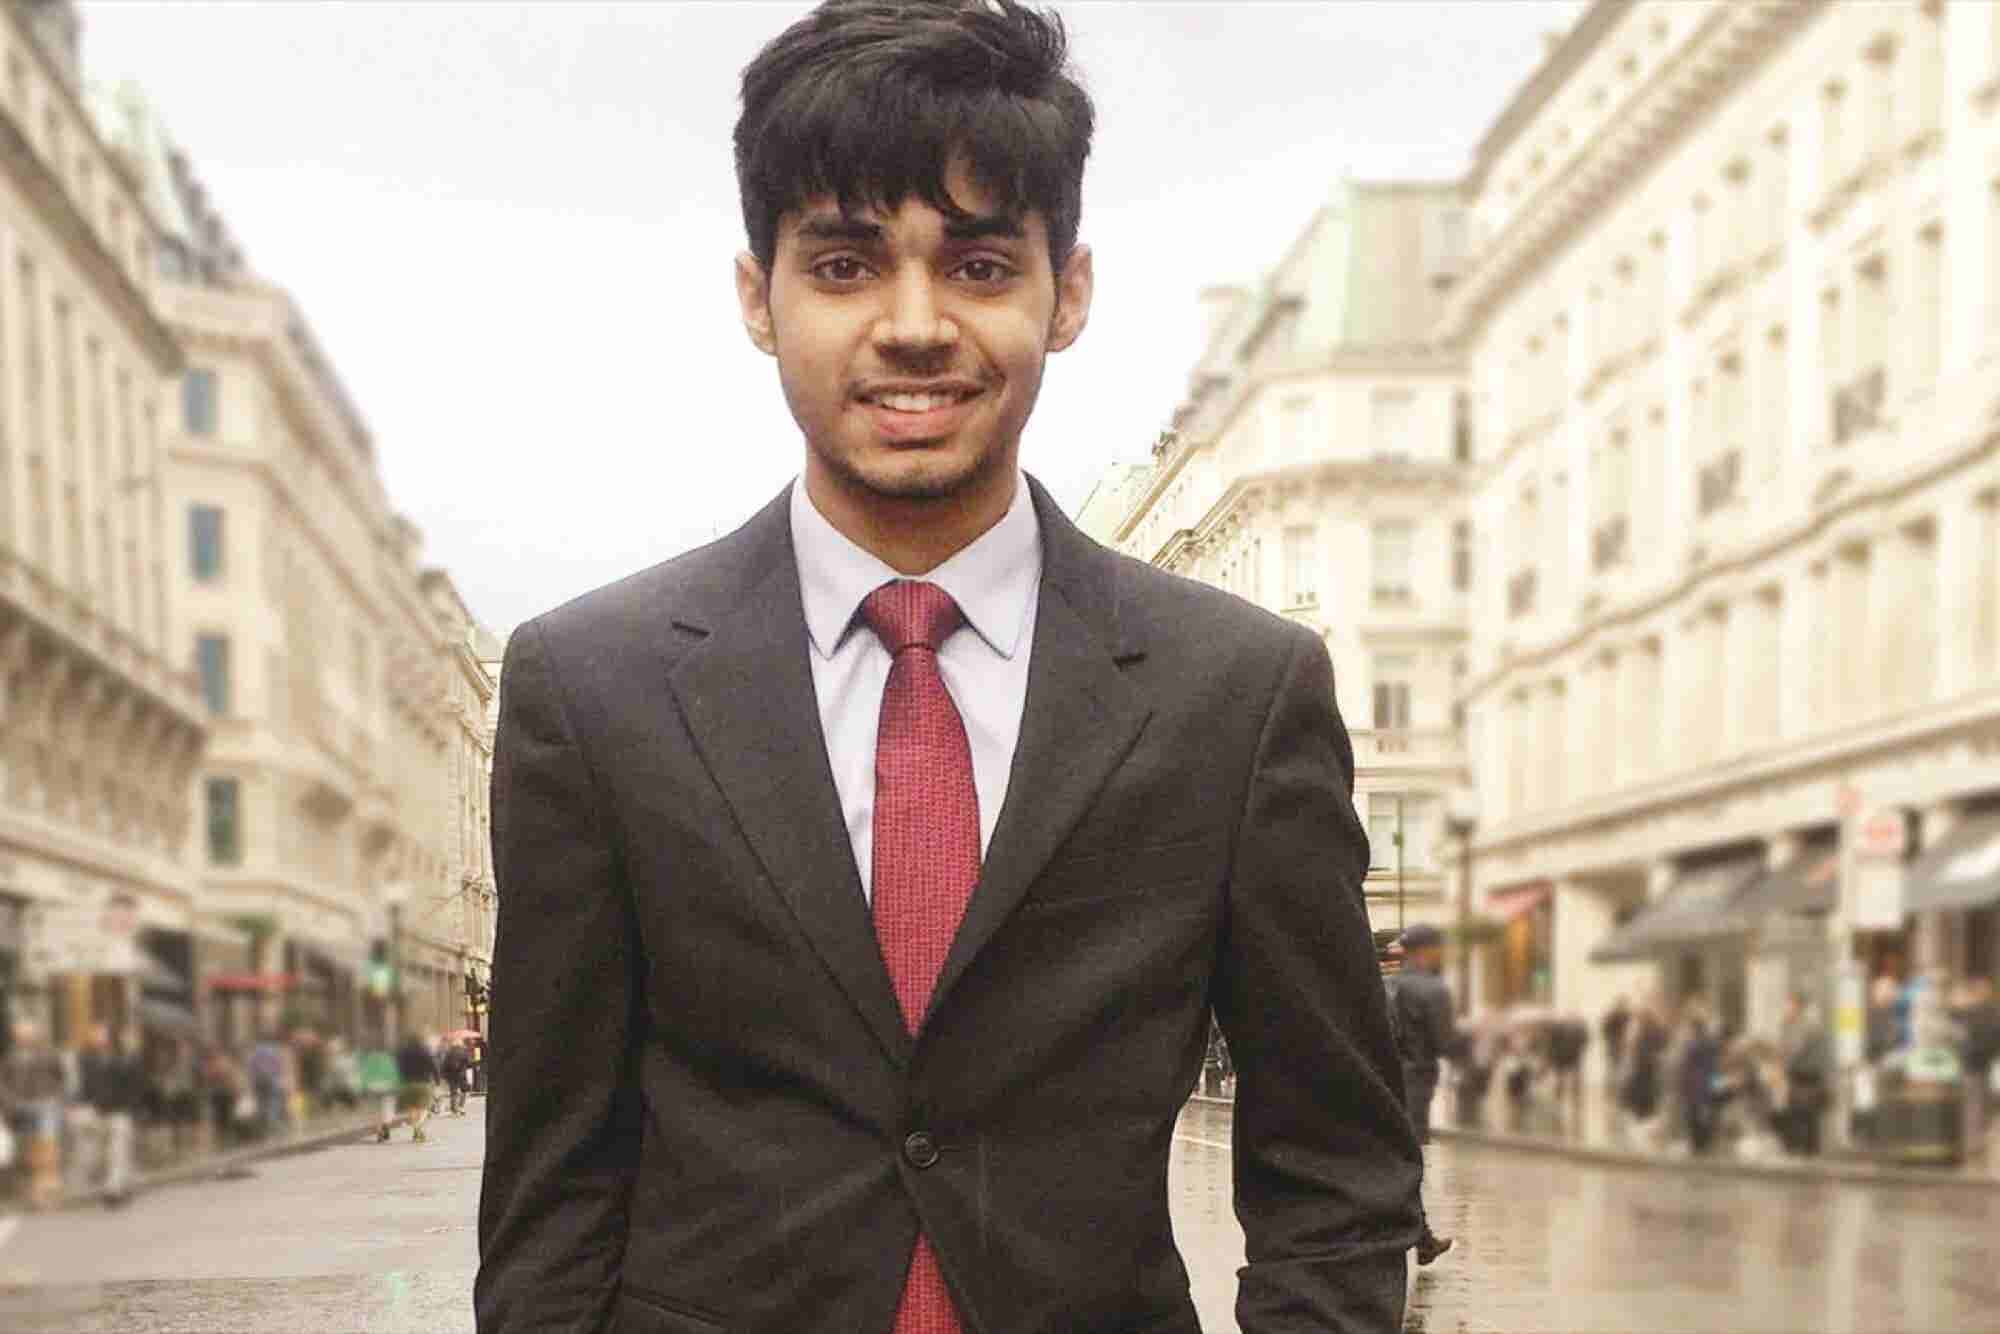 The Audacious Journey of India's Youngest Ethical Hacker Trishneet Arora